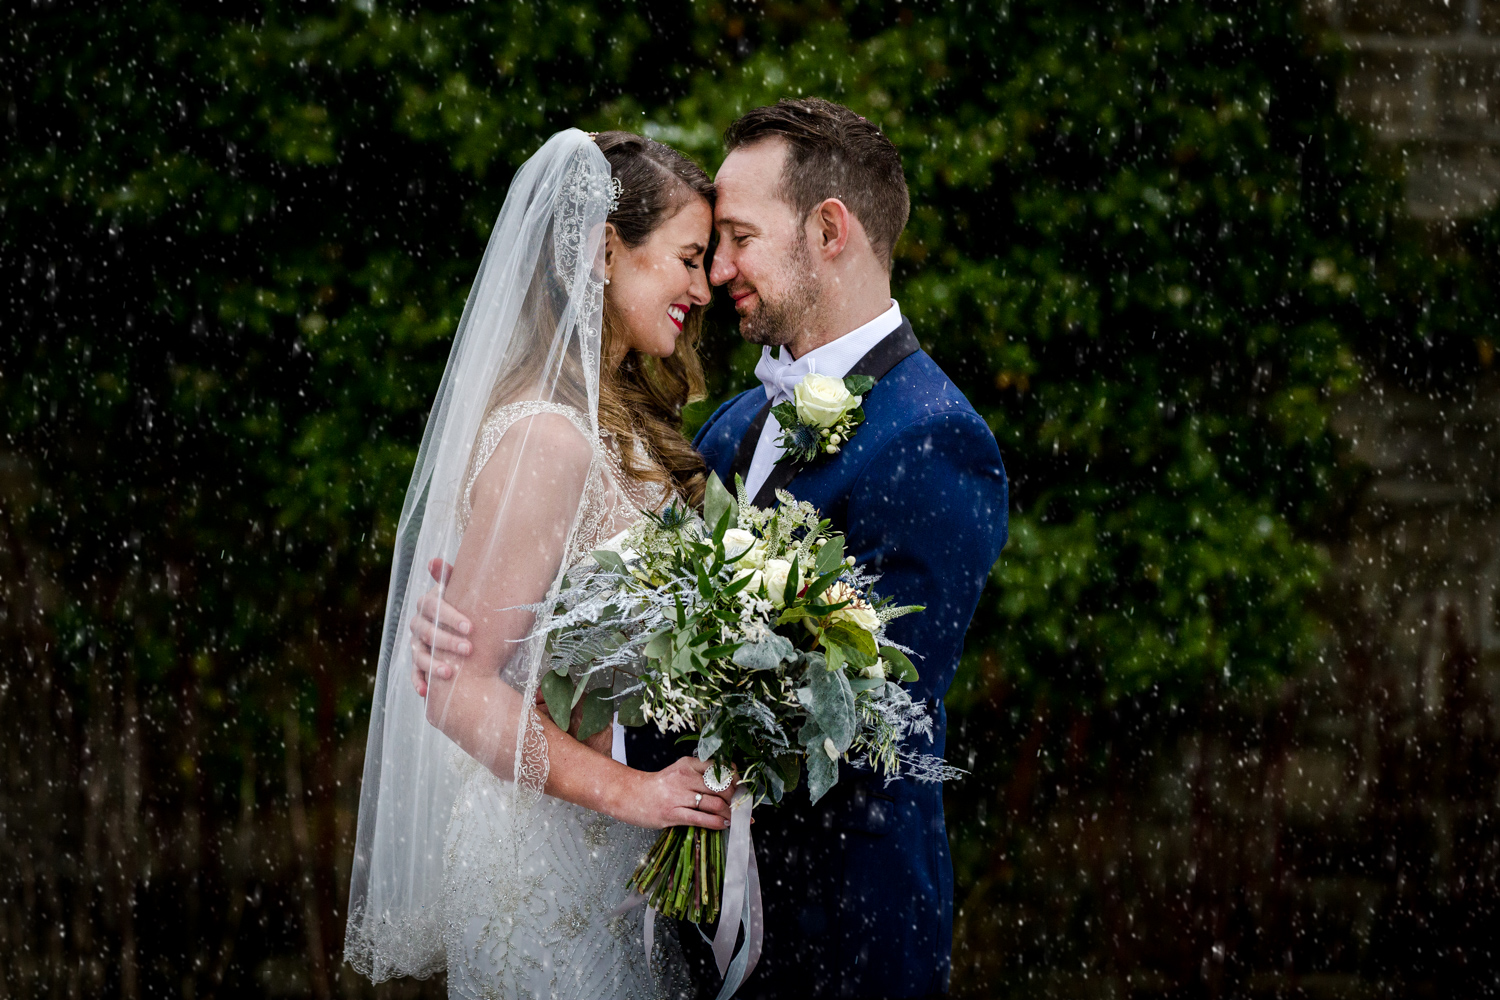 The bride and groom during a snowy winter wedding at Stanley House